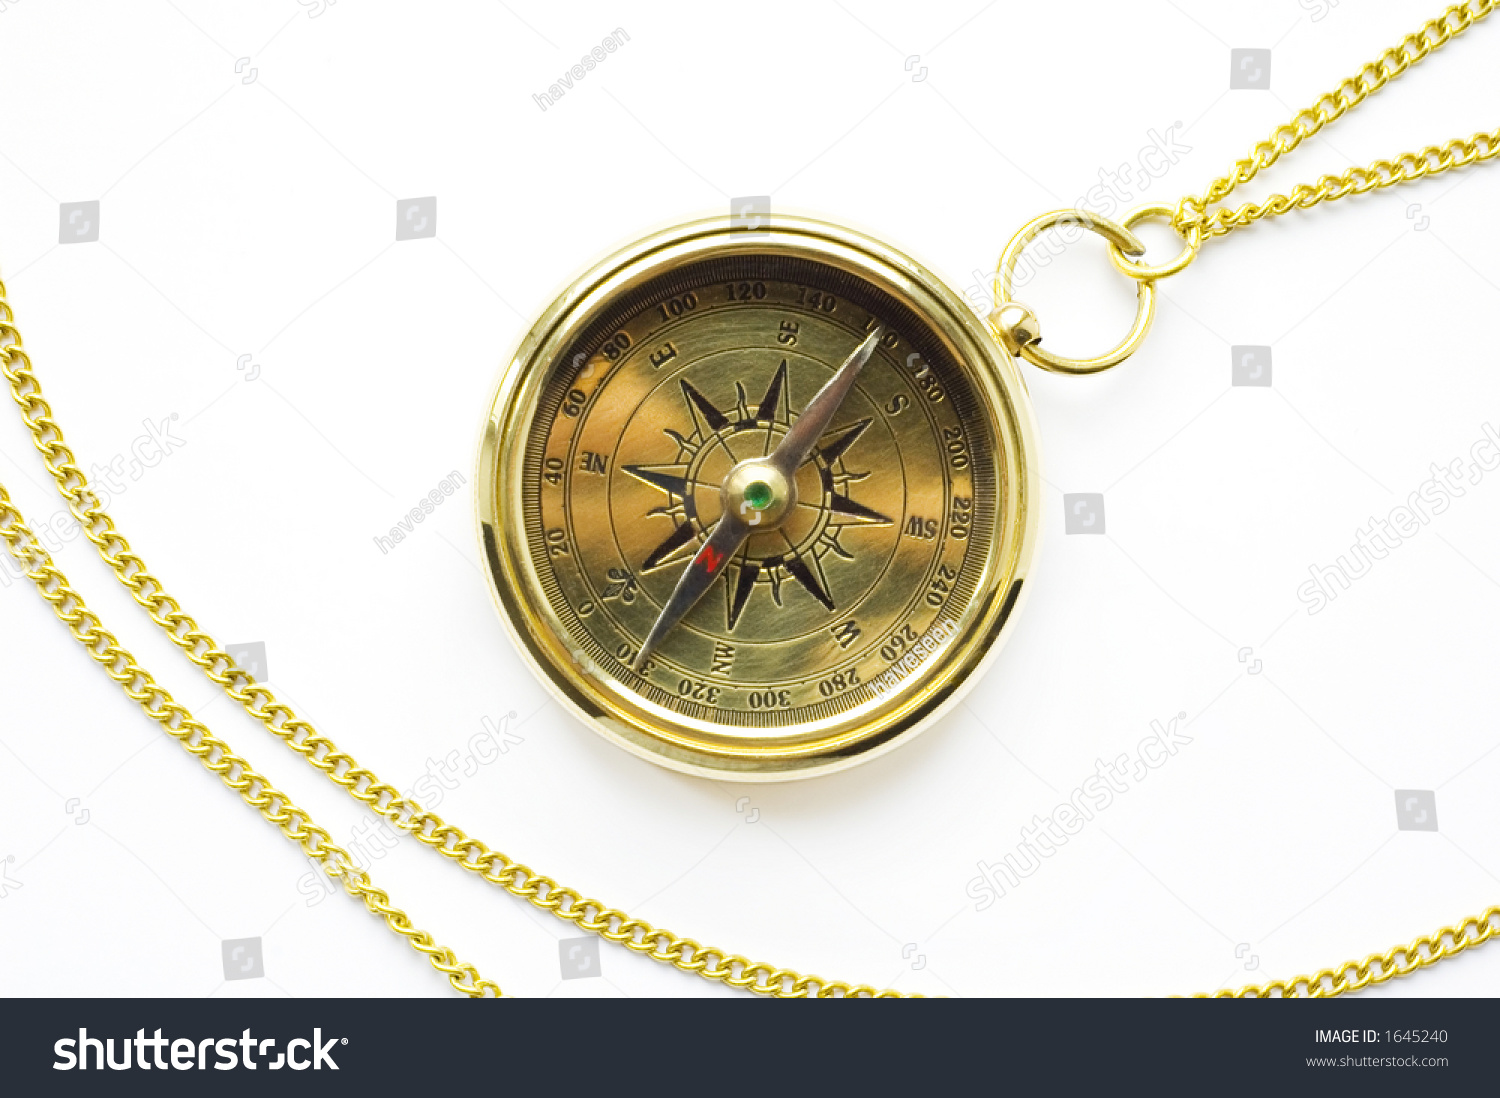 Old Style Gold Compass With Chain On White Background 1645240